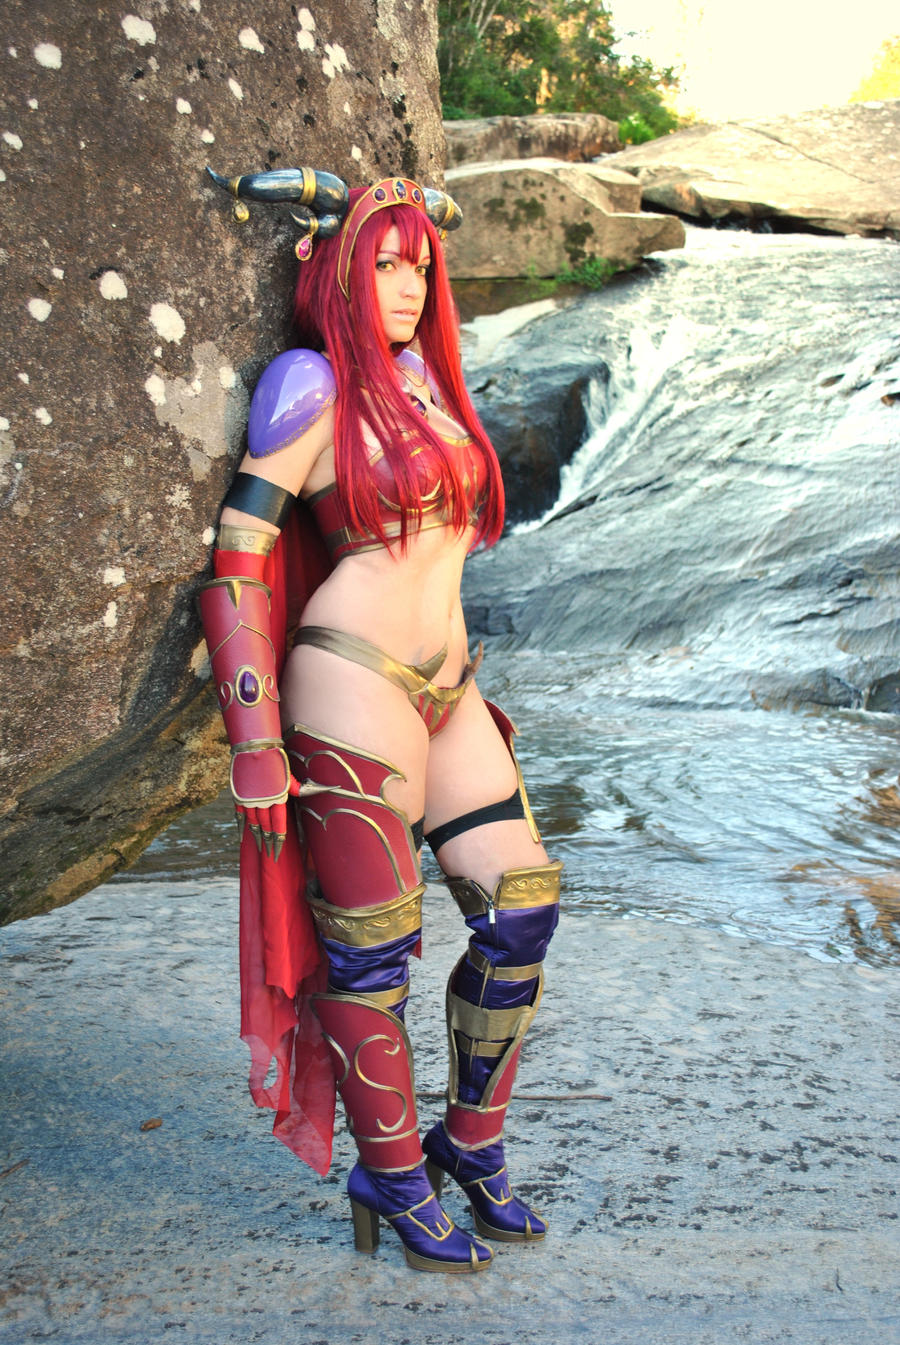 Alexstrasza girl sexy photo